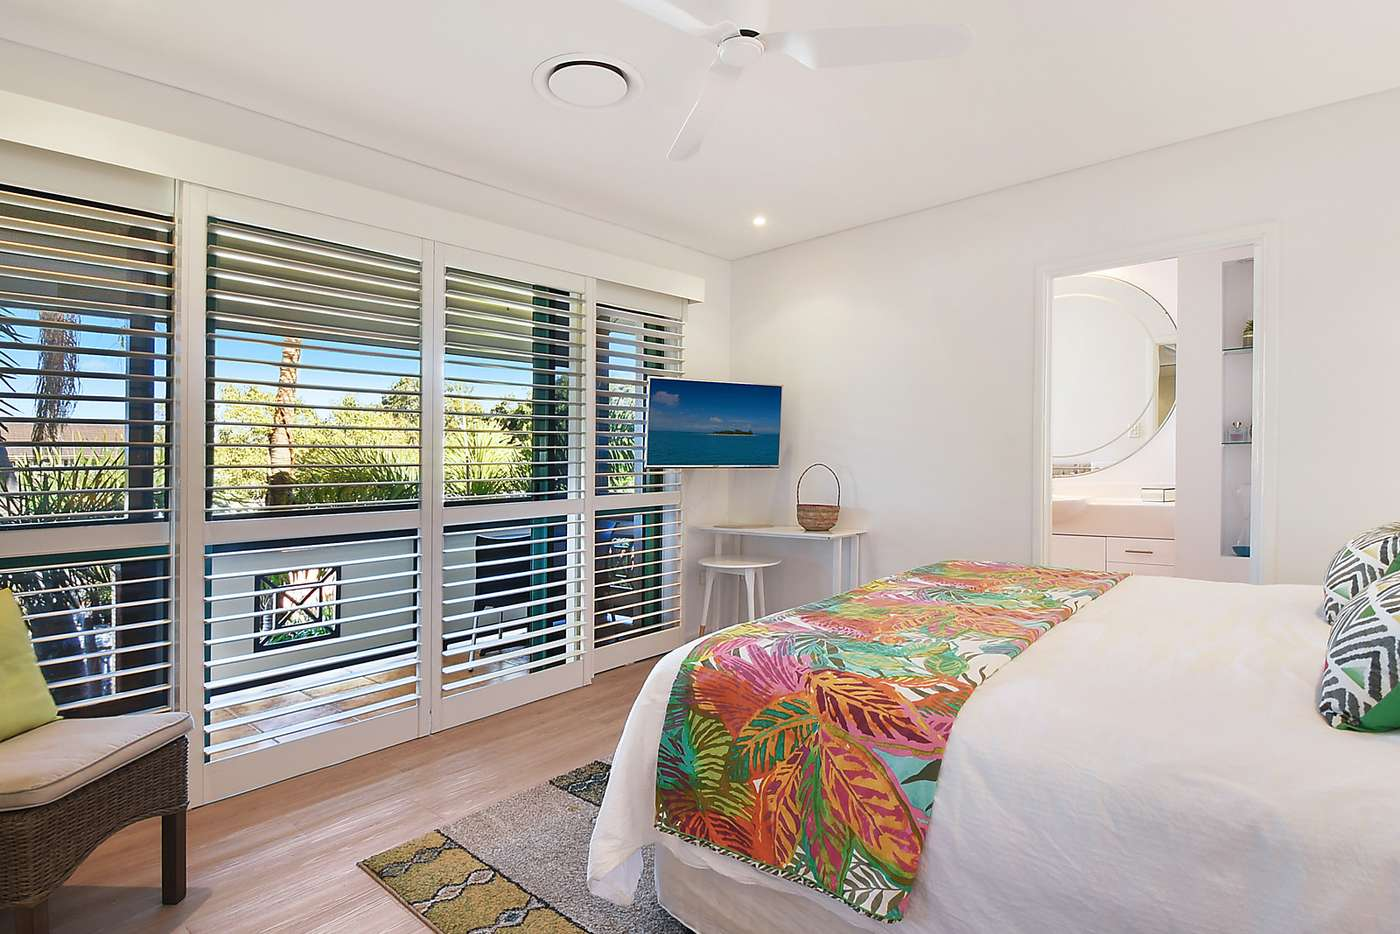 Fifth view of Homely apartment listing, 5/97 The Strand, North Ward QLD 4810